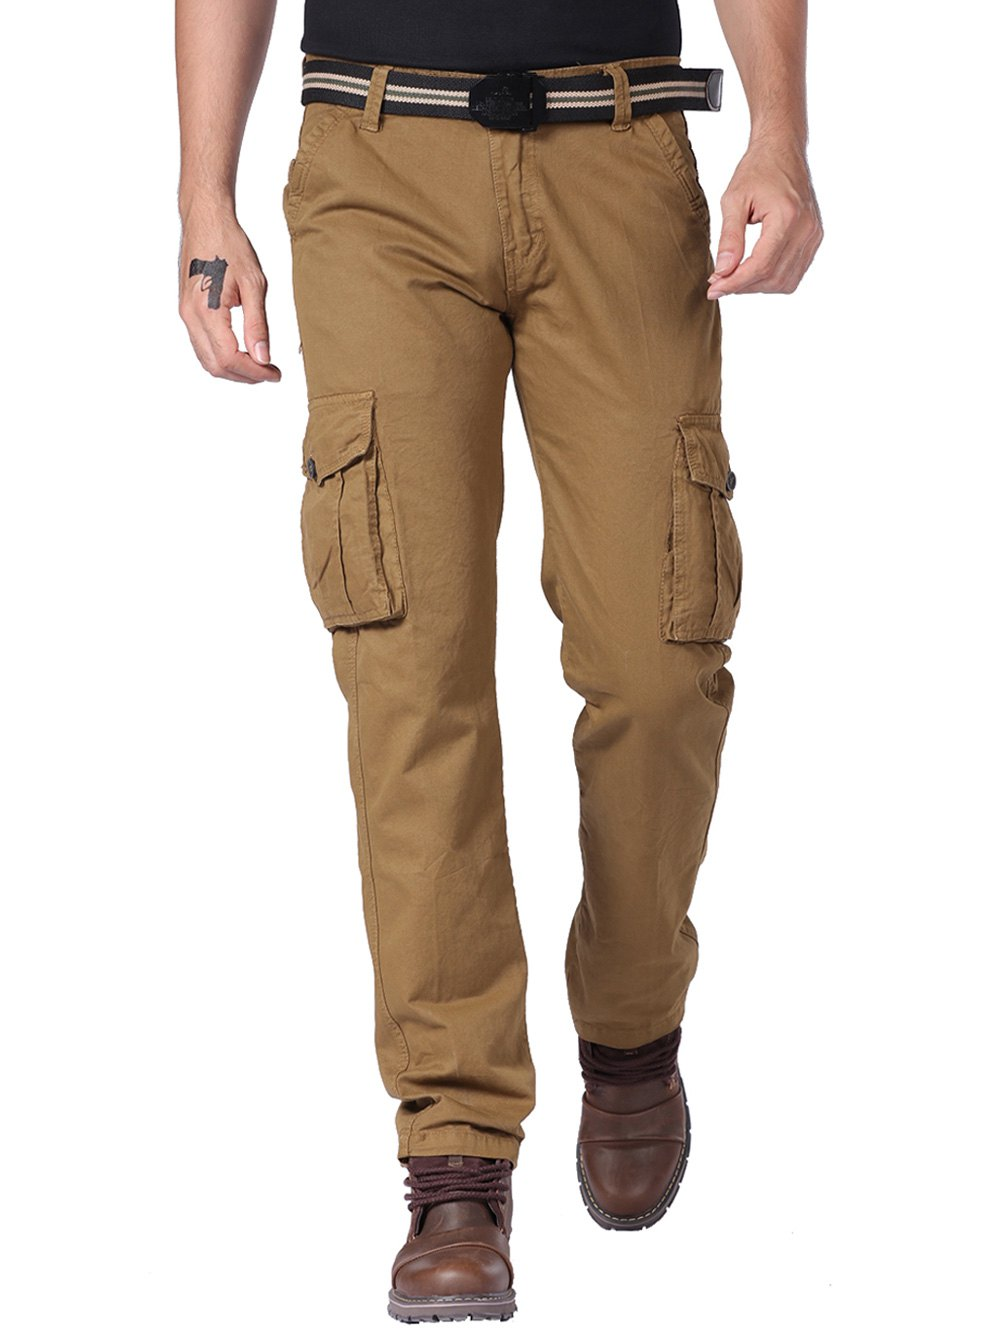 Shop Zipper Fly Cargo Pants with Multi Pockets